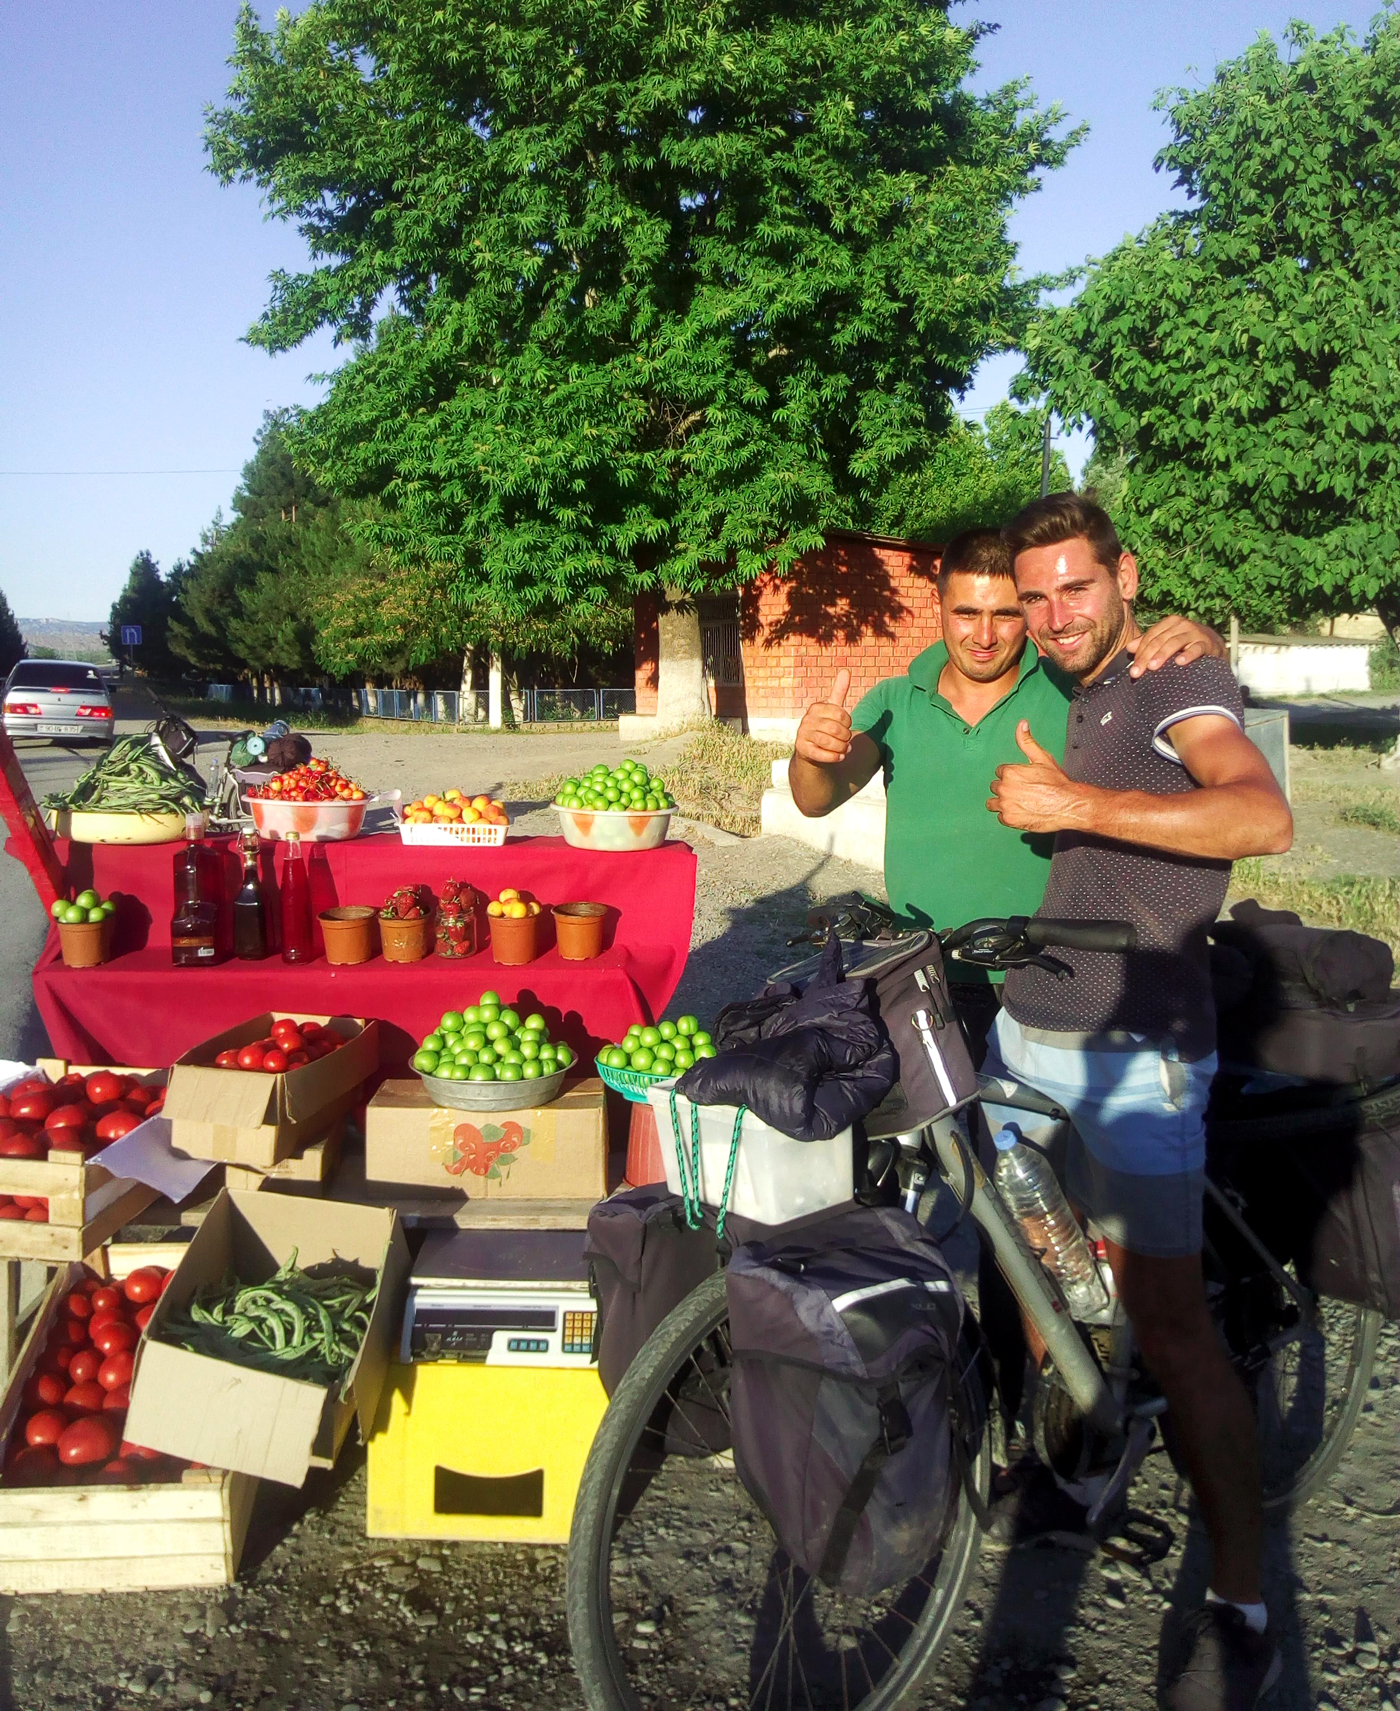 Cycling, Azerbaijan Cycling, crossing the Caucasus region by bicycle, fruit and vegetable merchant on the roadside. Cycling travel, biketouring, cycling Caucasus, fruits and vegetables seller on the side of the road.